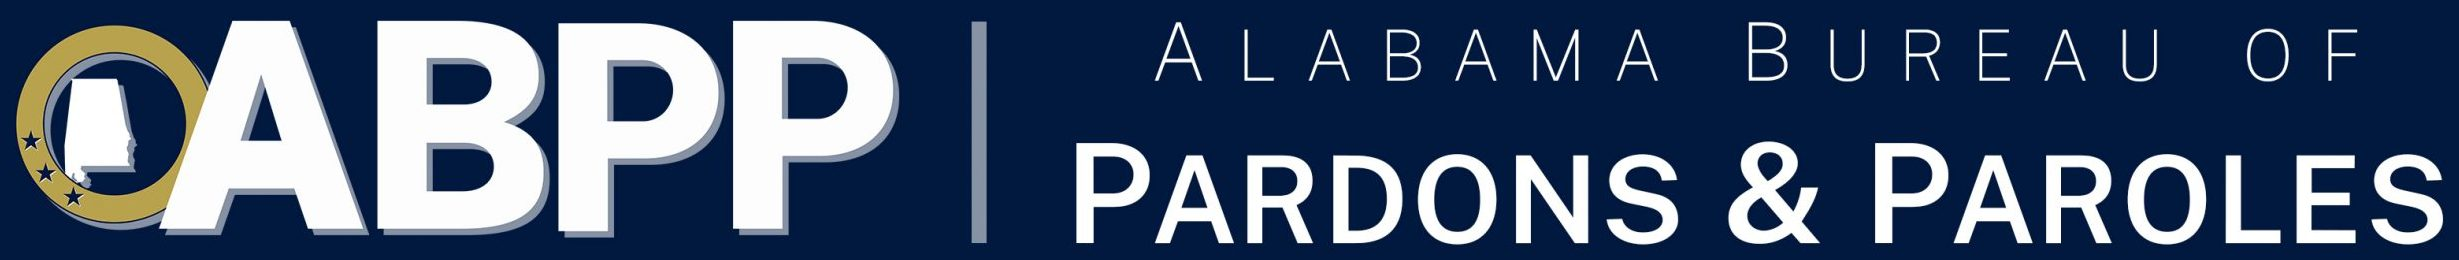 Alabama Bureau of Pardons and Paroles